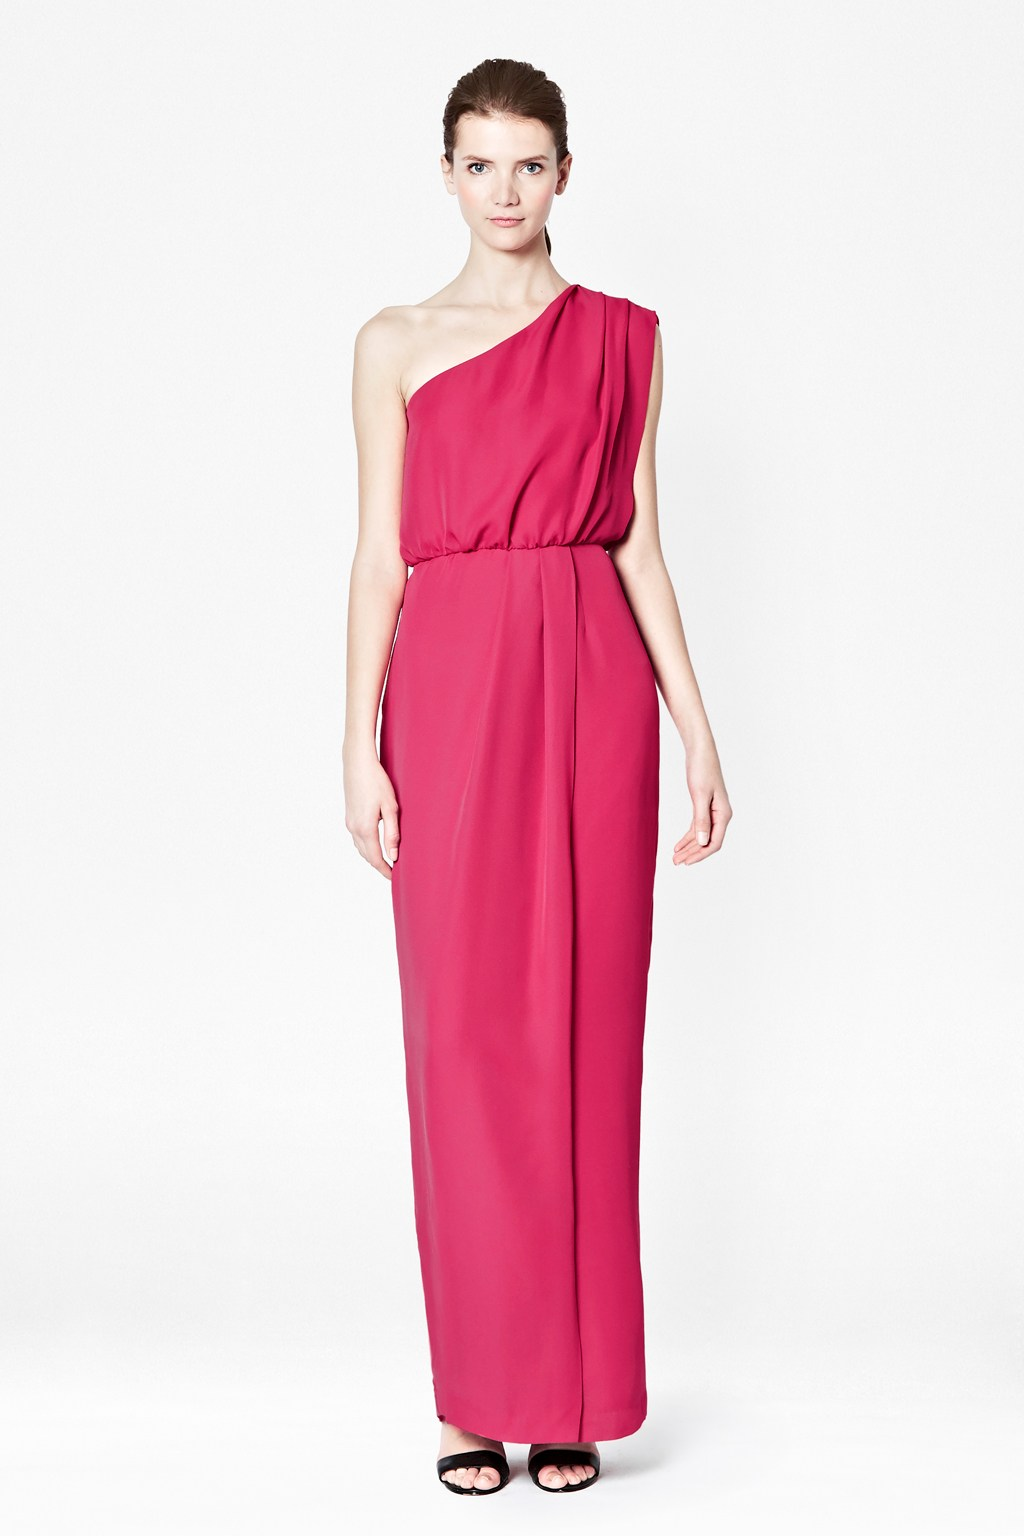 Turmec Pink One Shoulder Maxi Dress